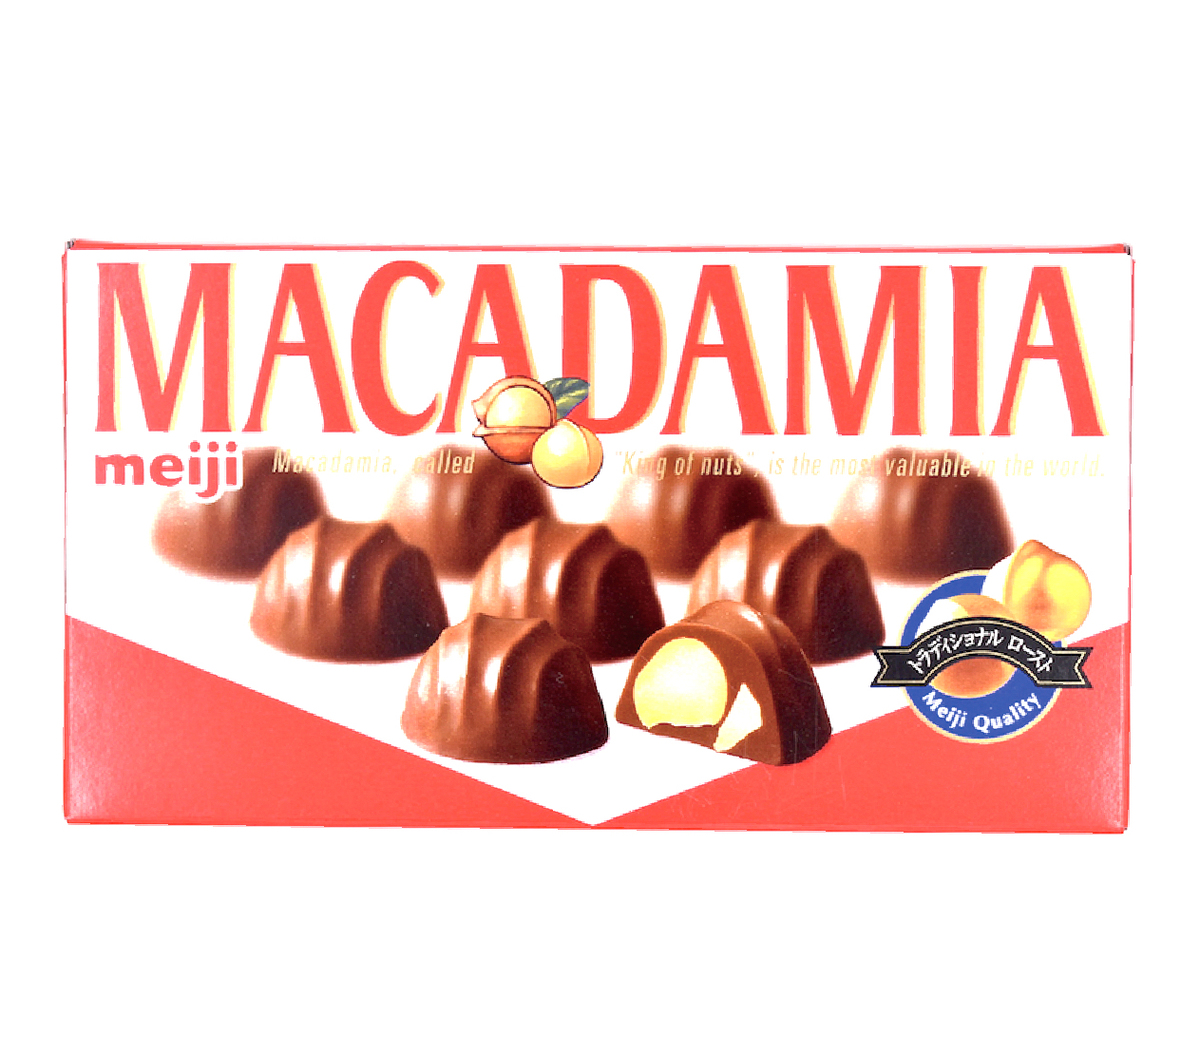 Macadamia chocolate